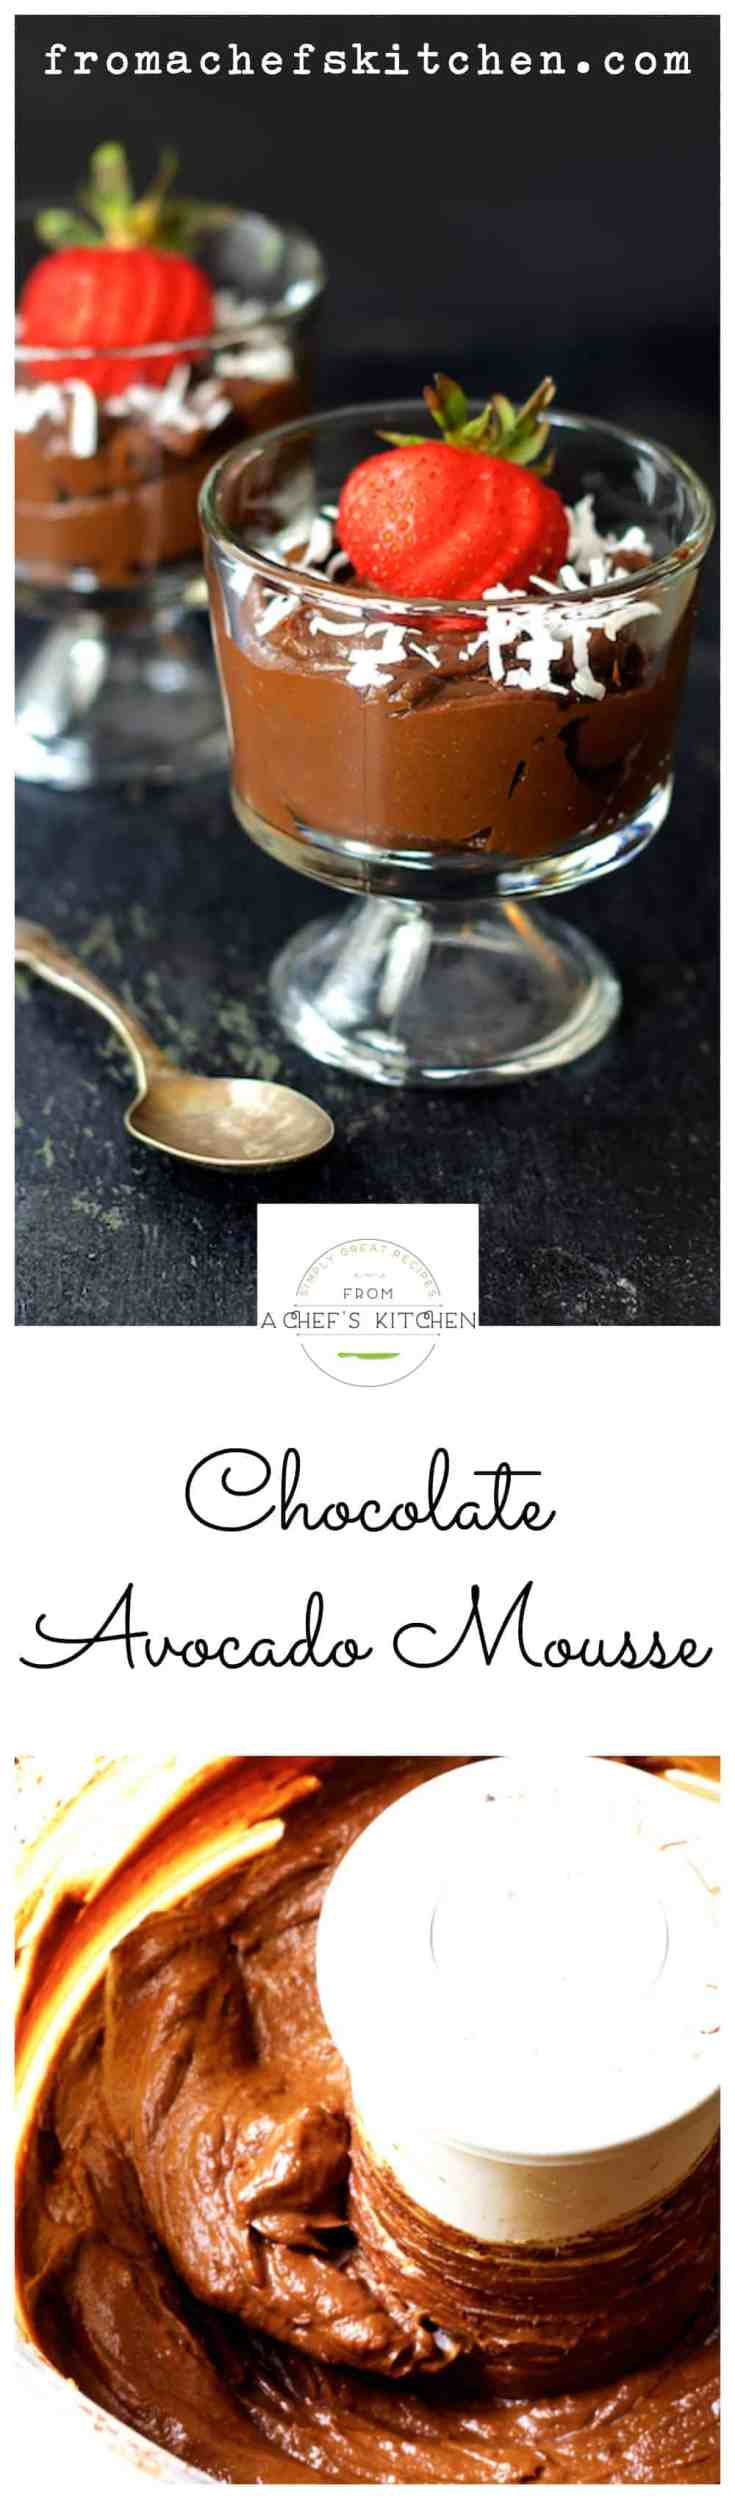 Chocolate Avocado Mousse is so simple to prepare you won't believe it!  Best of all, sinfully rich and healthful peacefully coexist in this Paleo-friendly and refined sugar-free dessert! #chocolate #avocado #desserts #Paleo